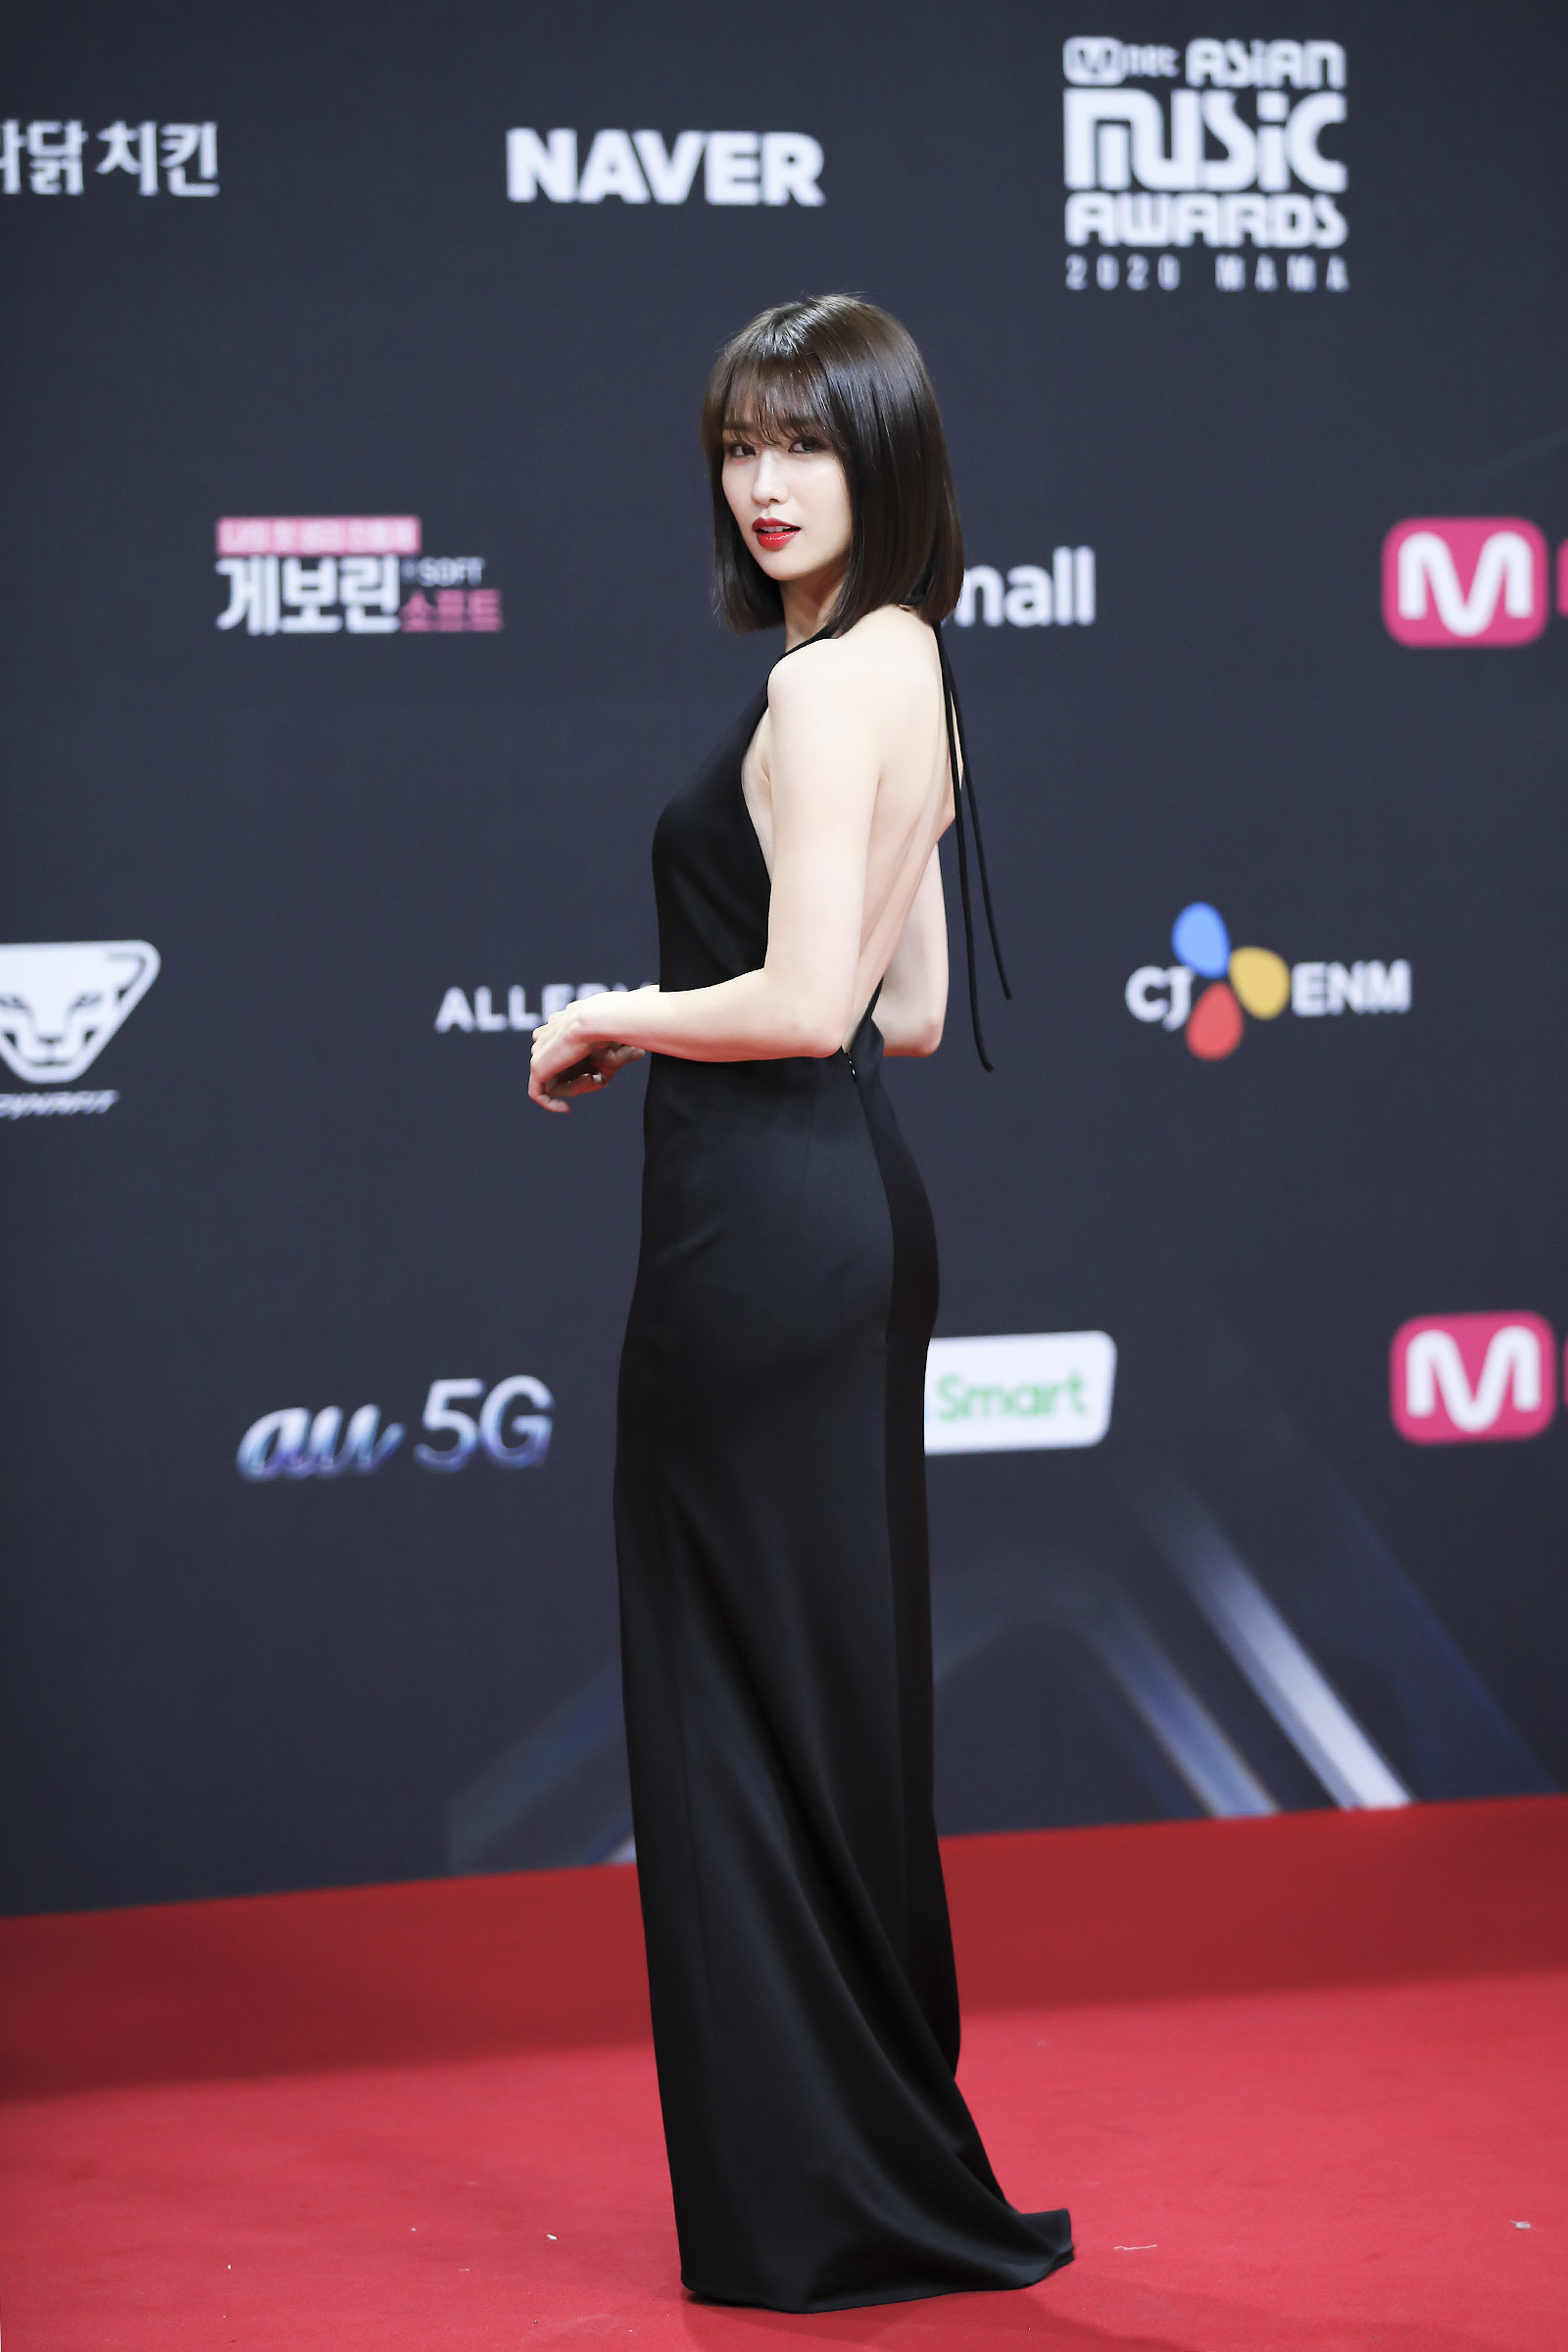 Park Ha Sun wears a black floor-length gown at the 2020 Mnet Asian Music Awards